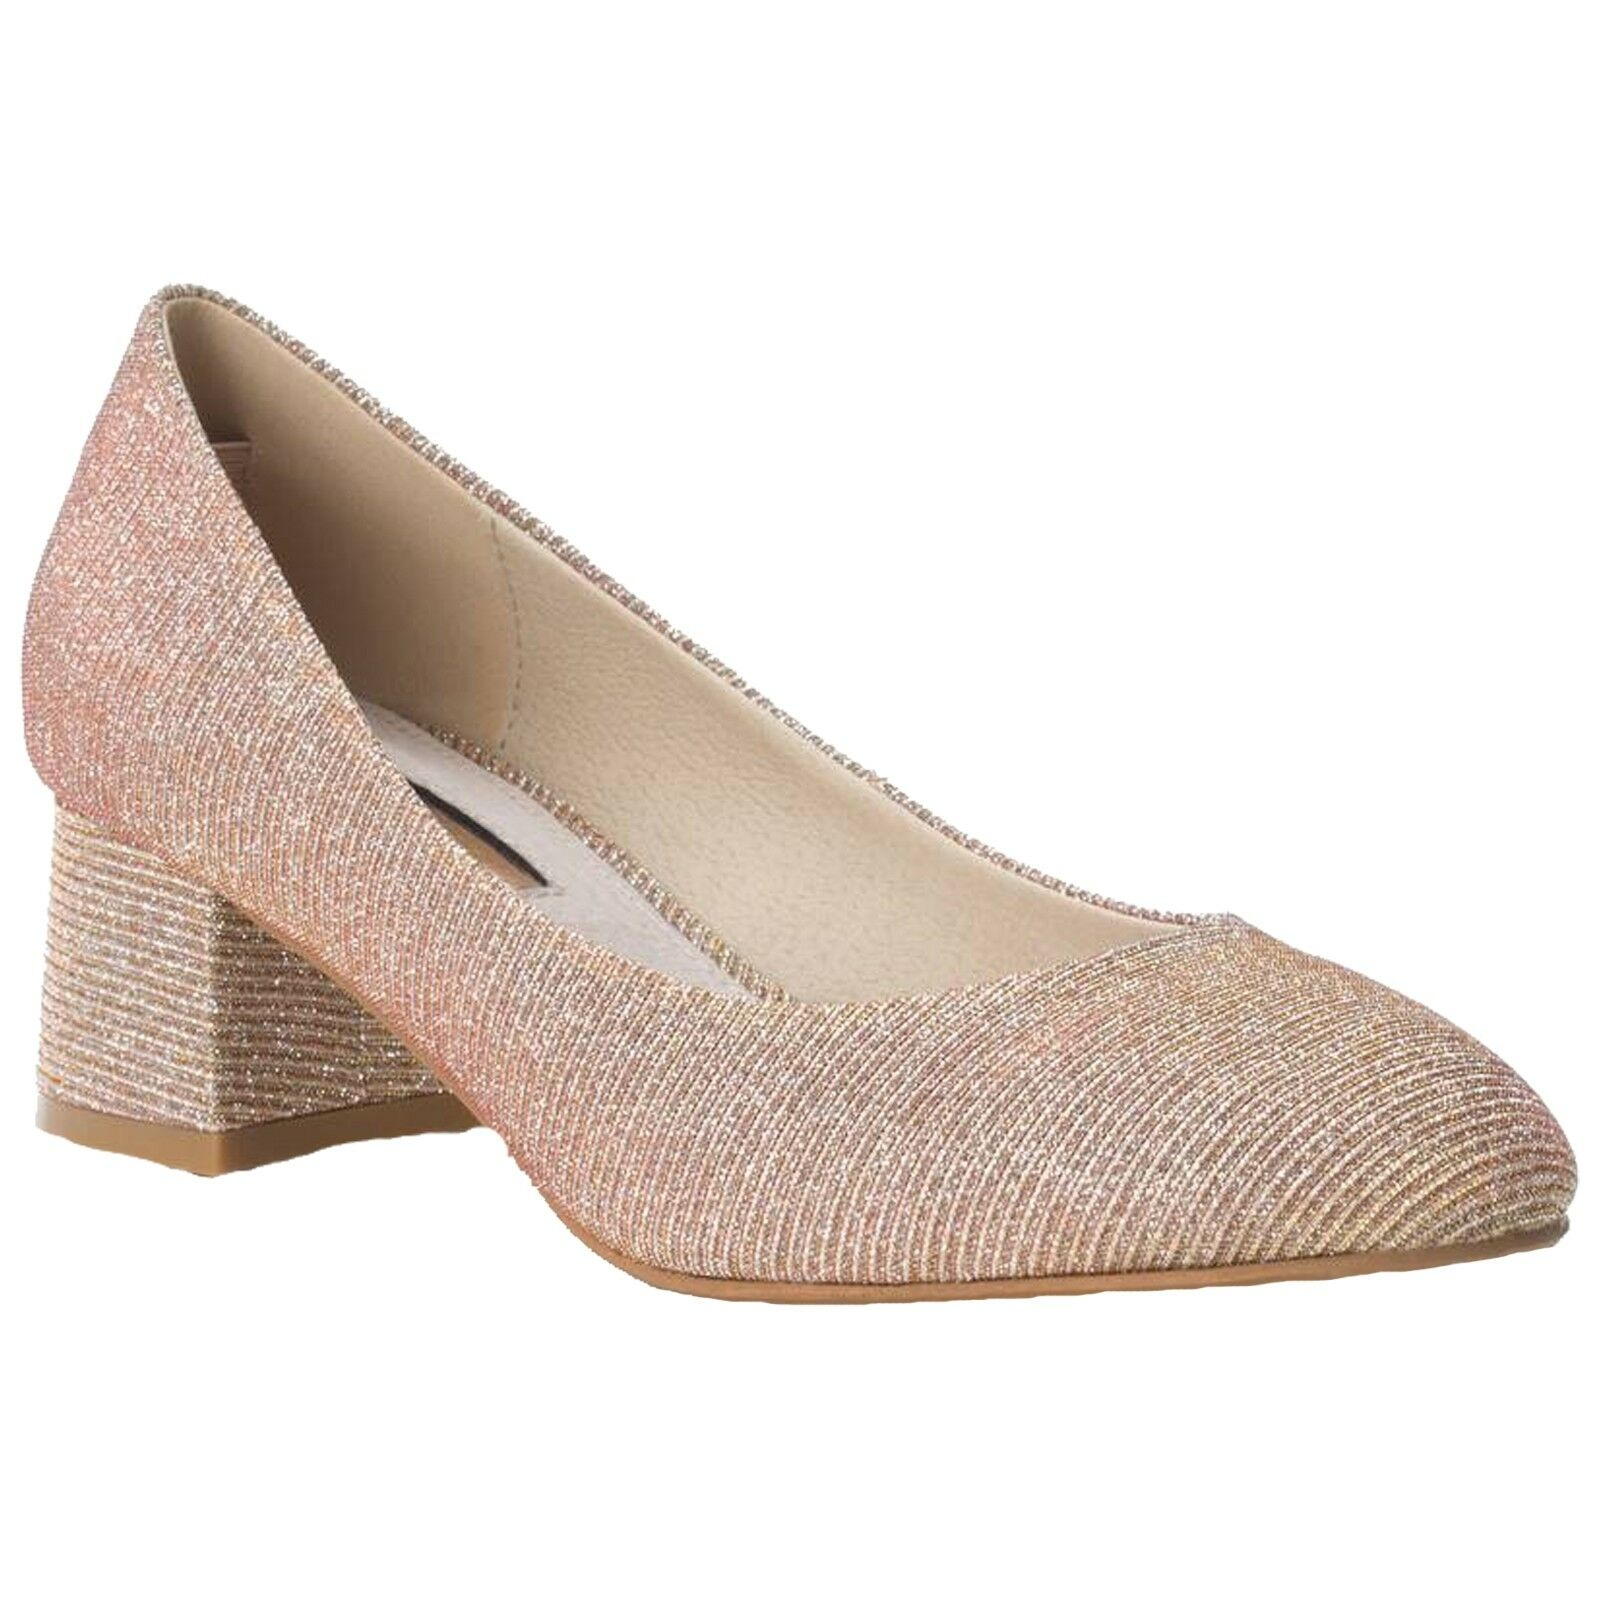 LADIES XTI ANTELINA METALLIC NUDE SHIMMER BLOCK HEEL COURT chaussures 30706